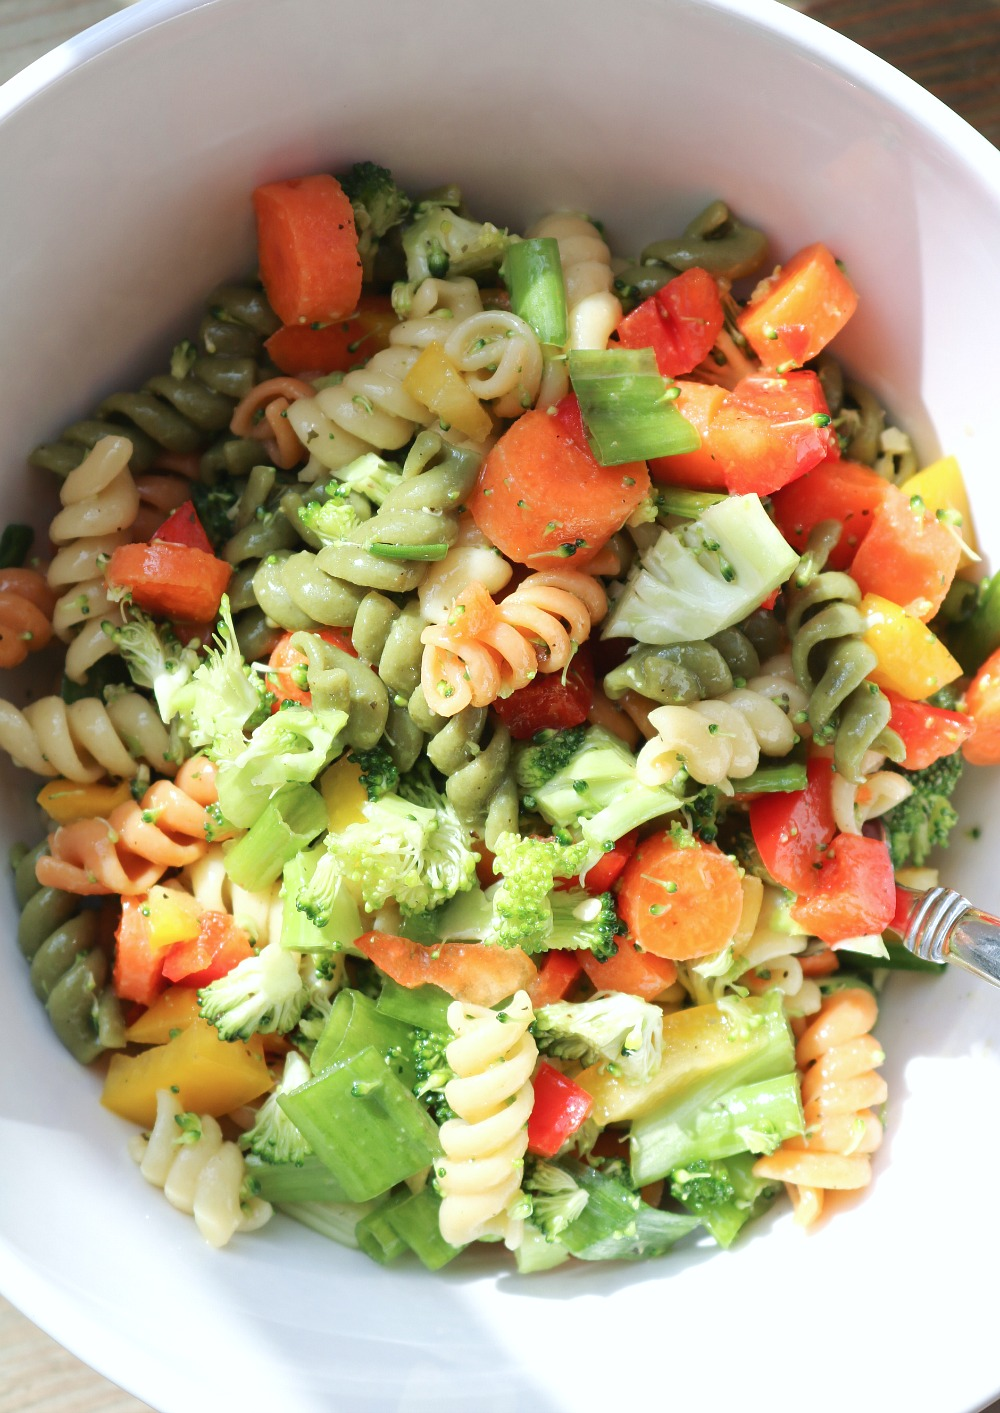 My Favorite Vegan Pasta Salad Recipe I Dreaminlace.com